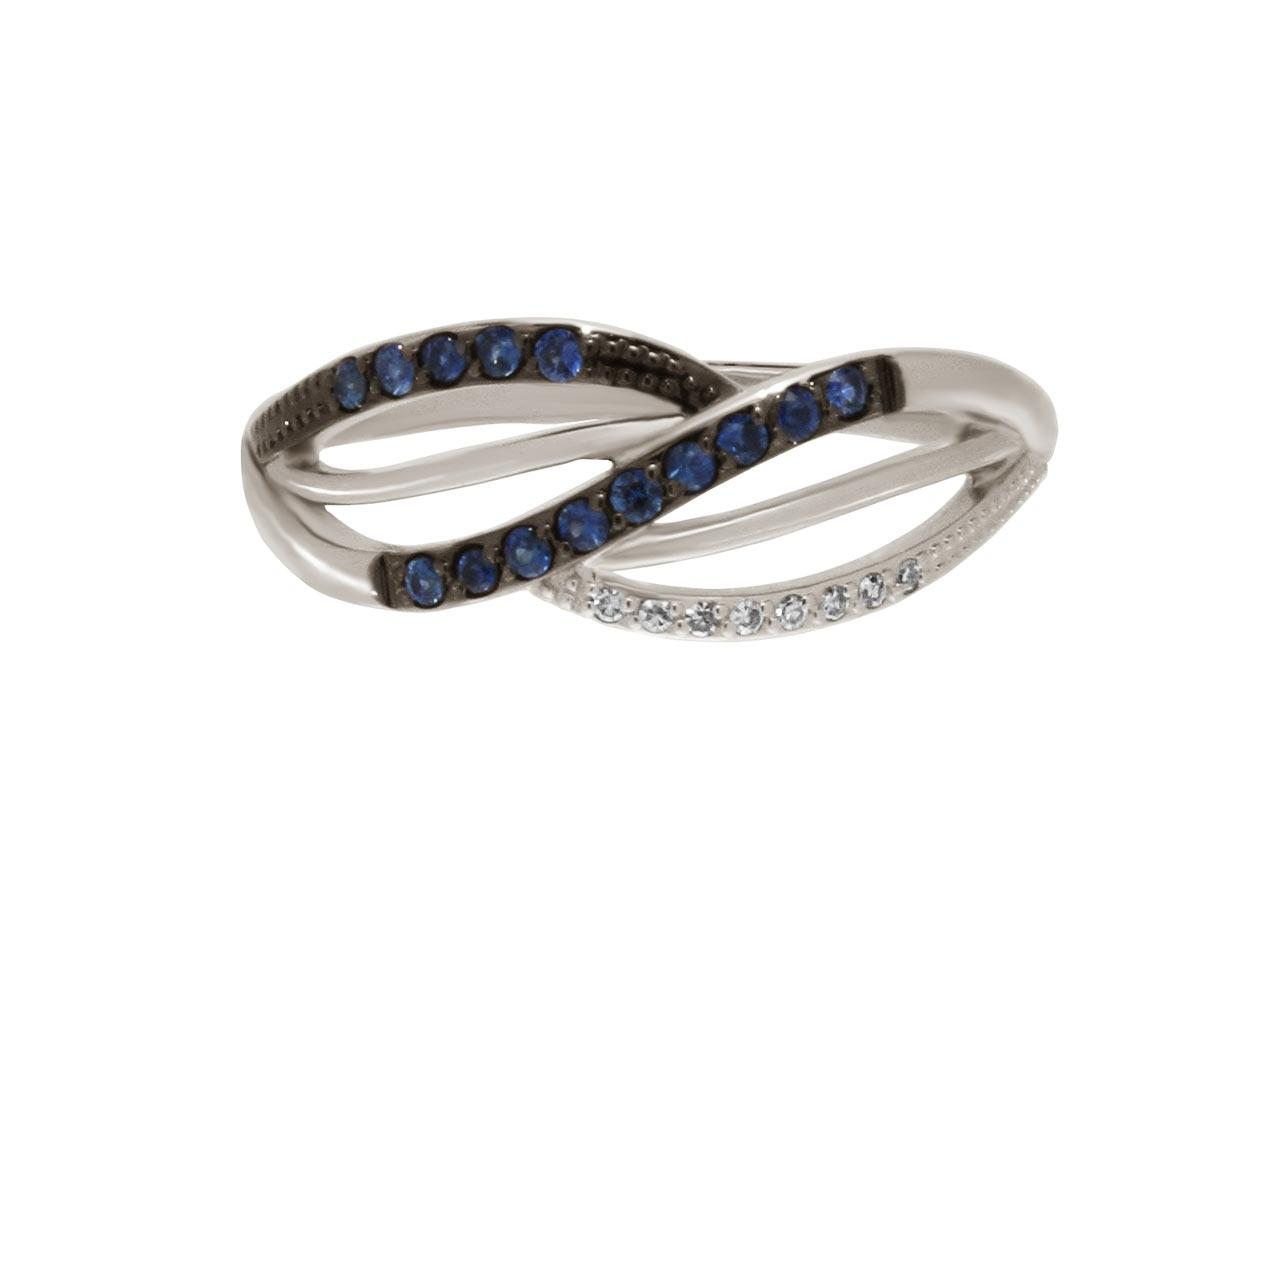 Sapphire and Diamond 14kt White Gold Crisscross Ring. View 2